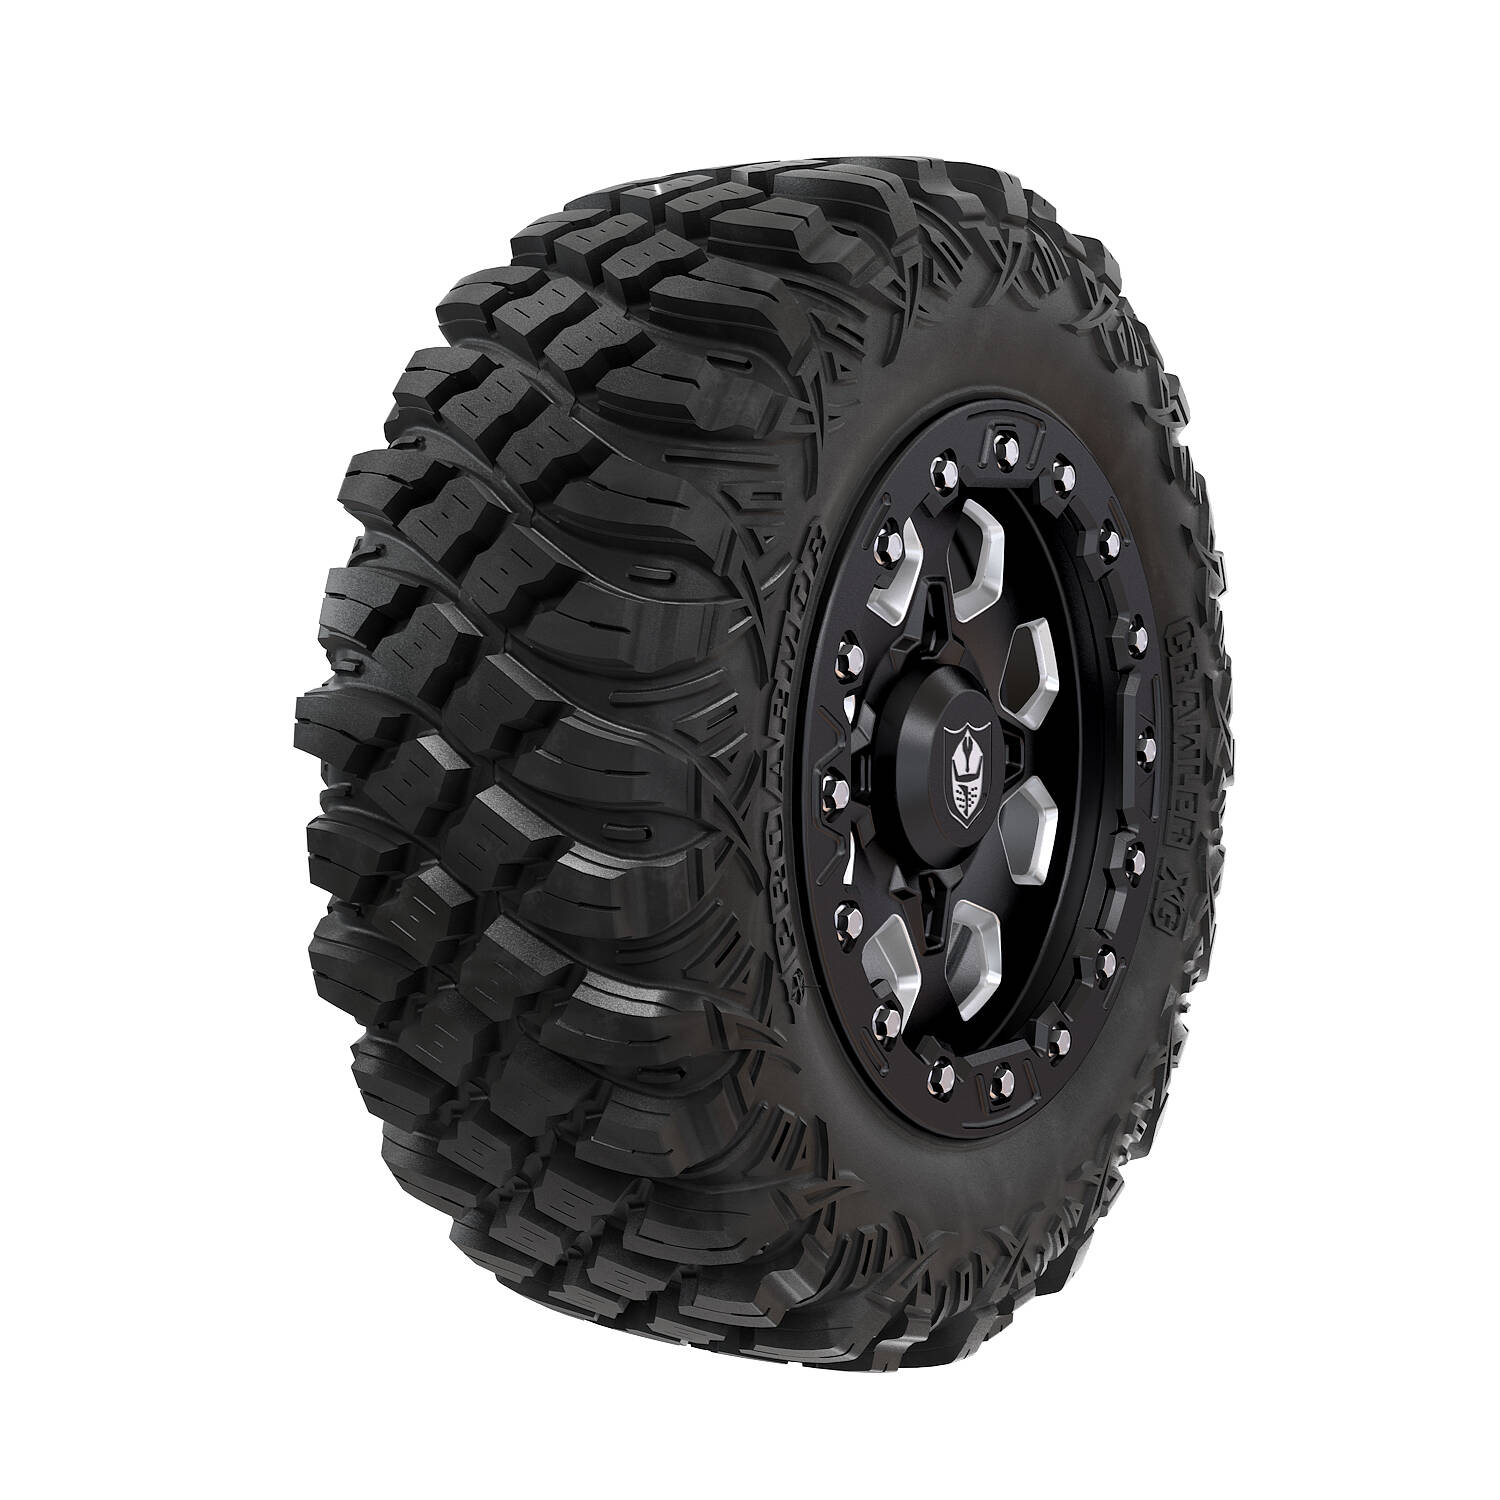 Pro Armor® Wheel & Tire Set: Hexlr- Matte Black & Crawler XG - 28""